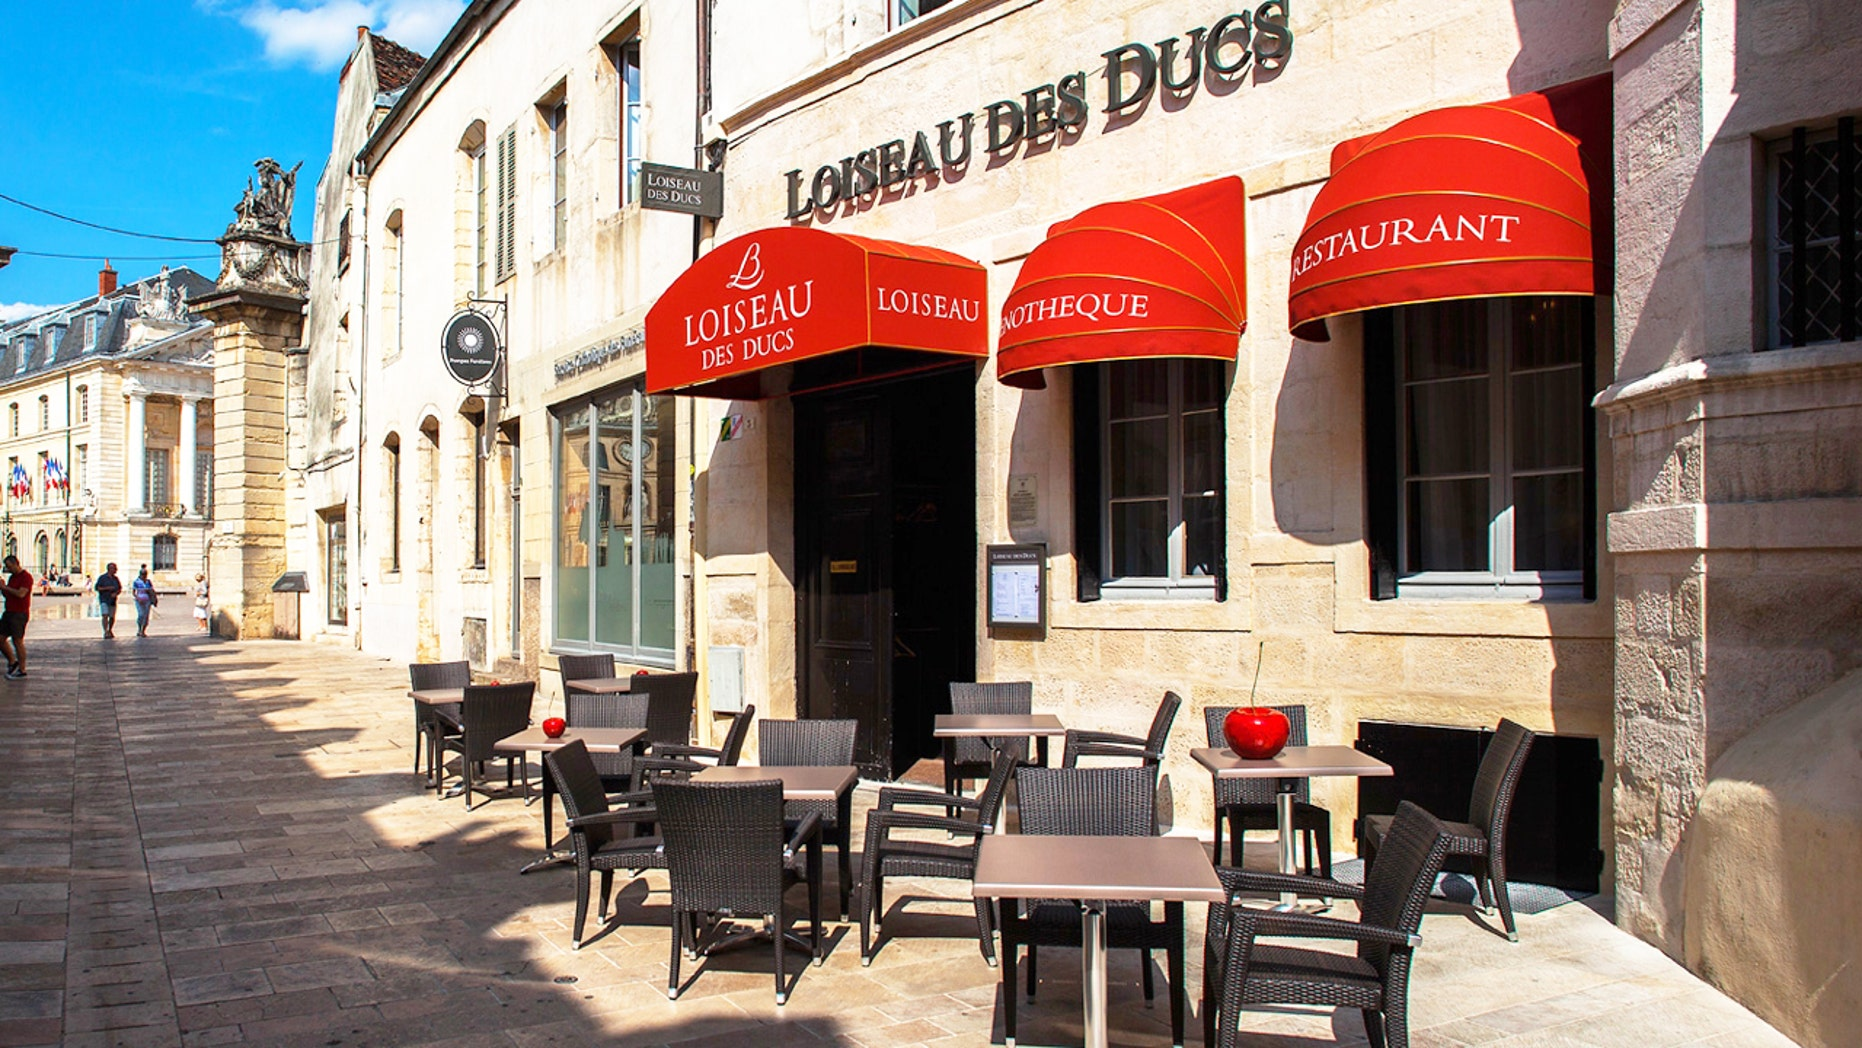 Loiseau des Ducs was able to track down a phony reviewer.